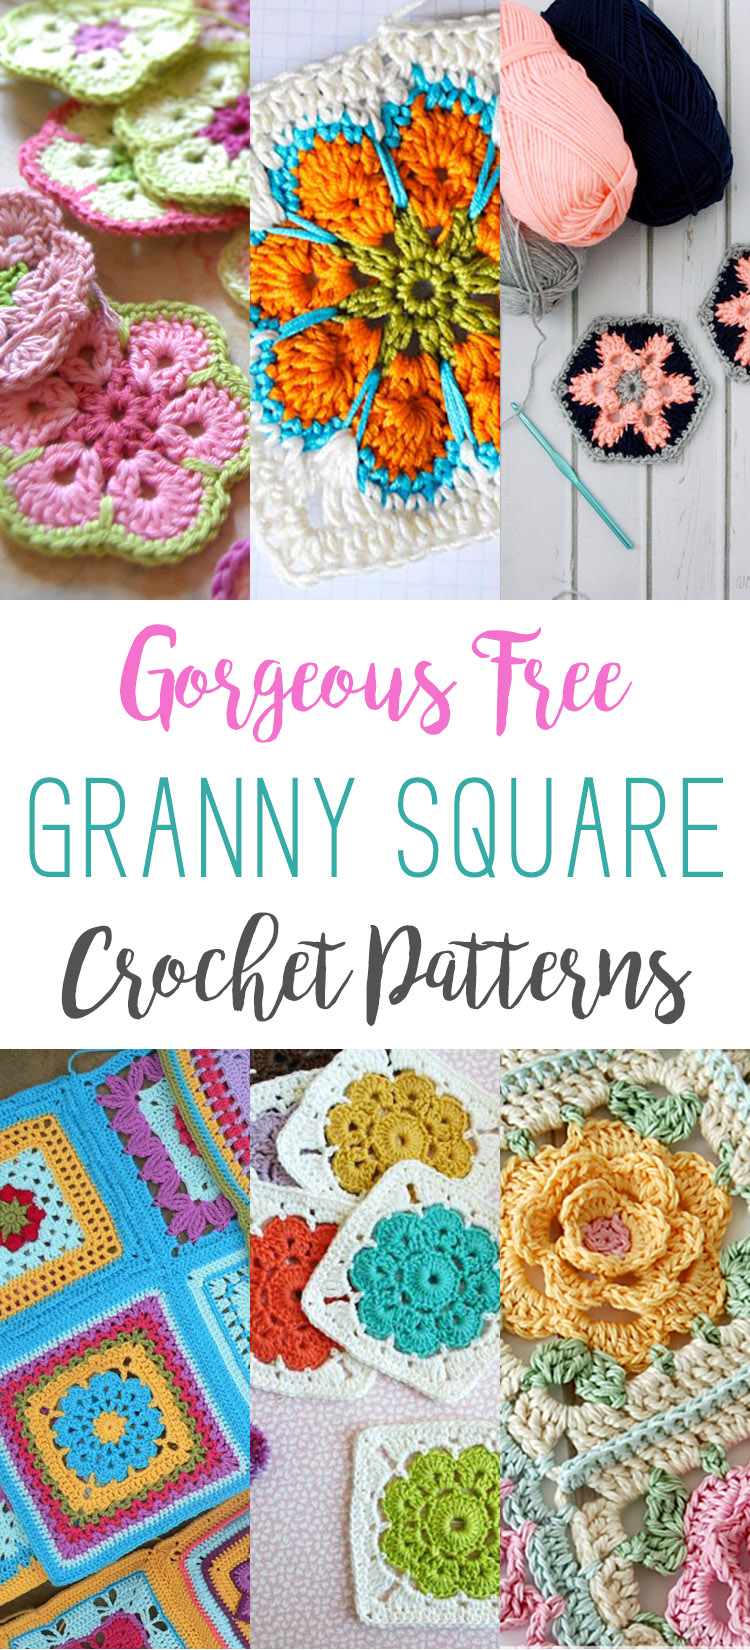 Check out these crochet patterns to practice your creativity skills.